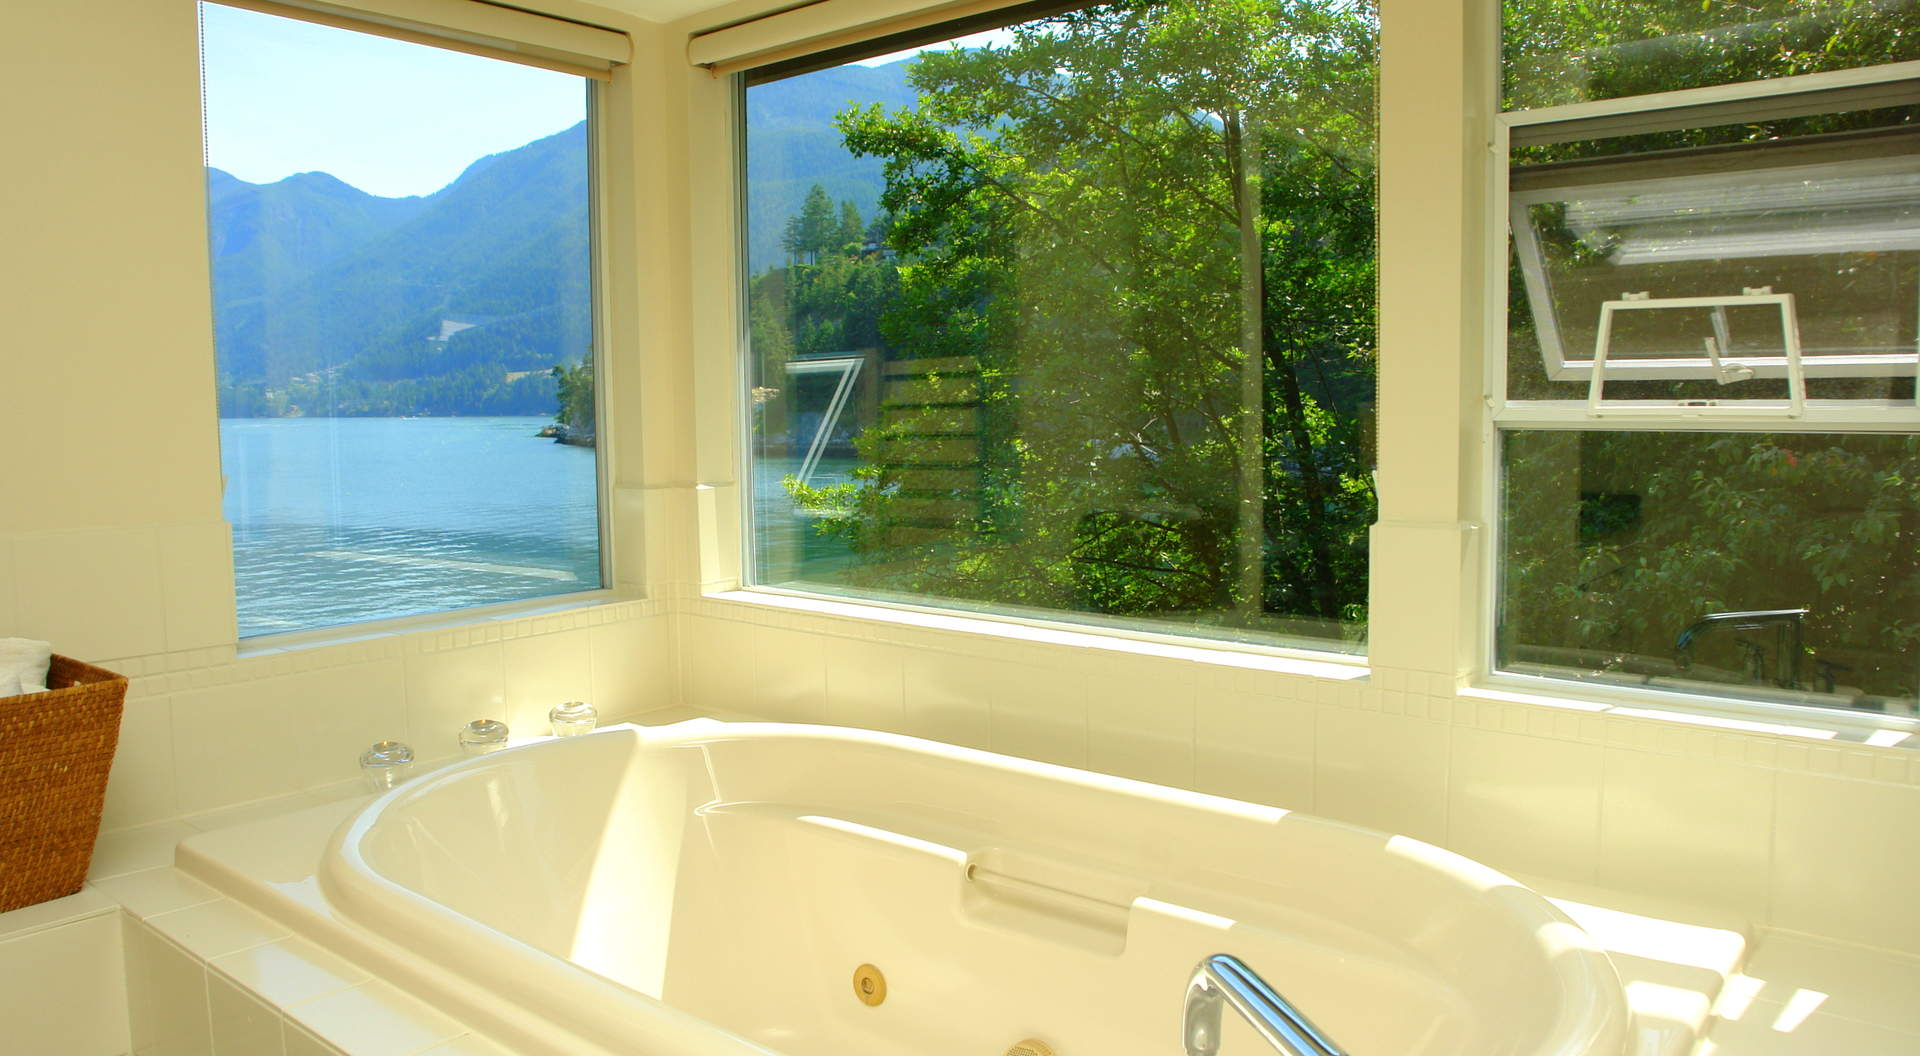 Soaker Tub Overlooking the Ocean